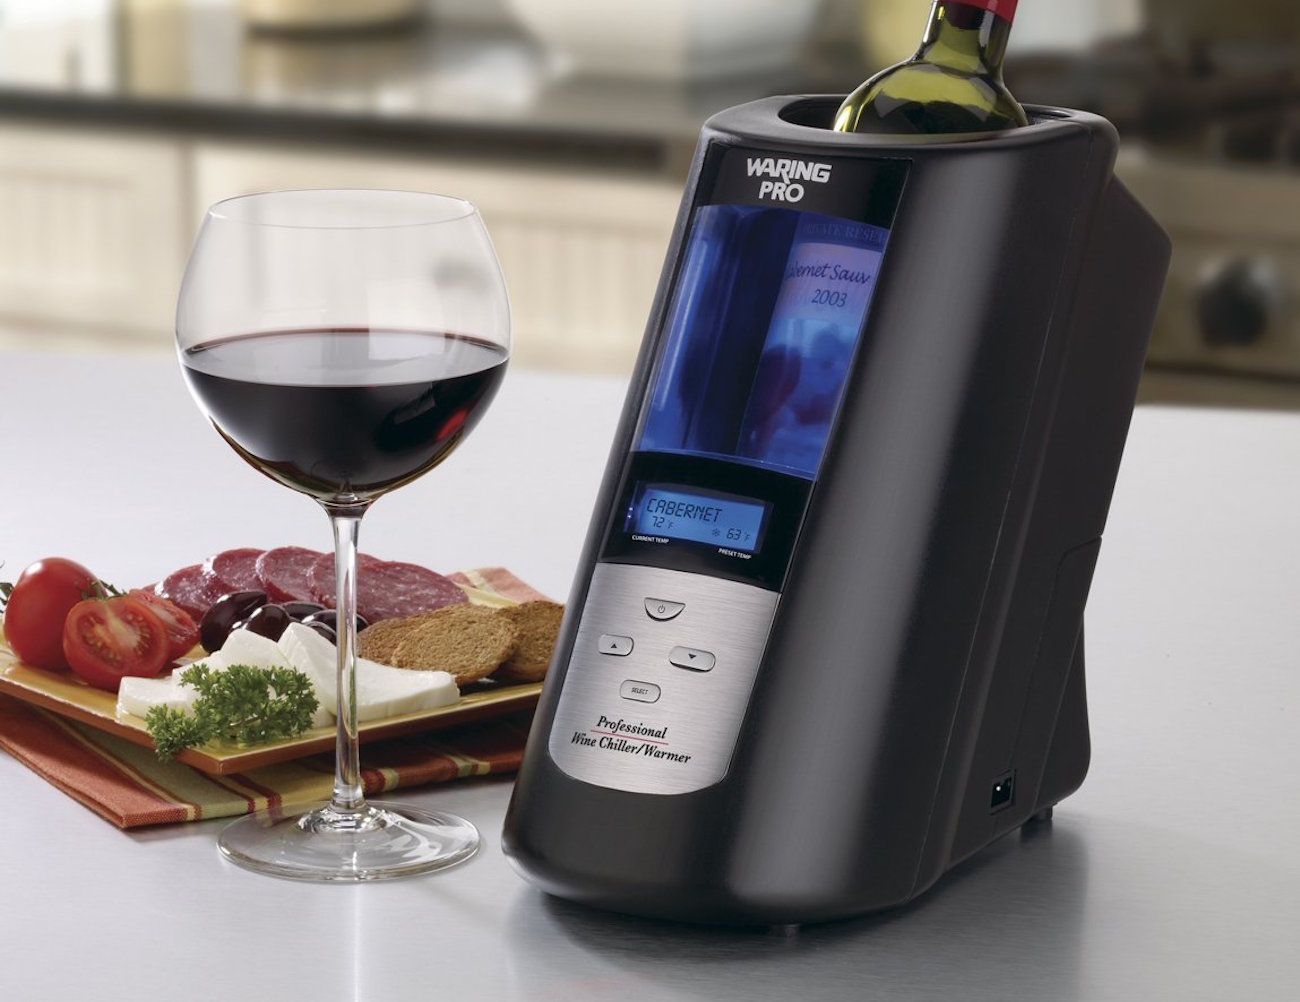 waring-pro-wine-chiller-and-warmer-01